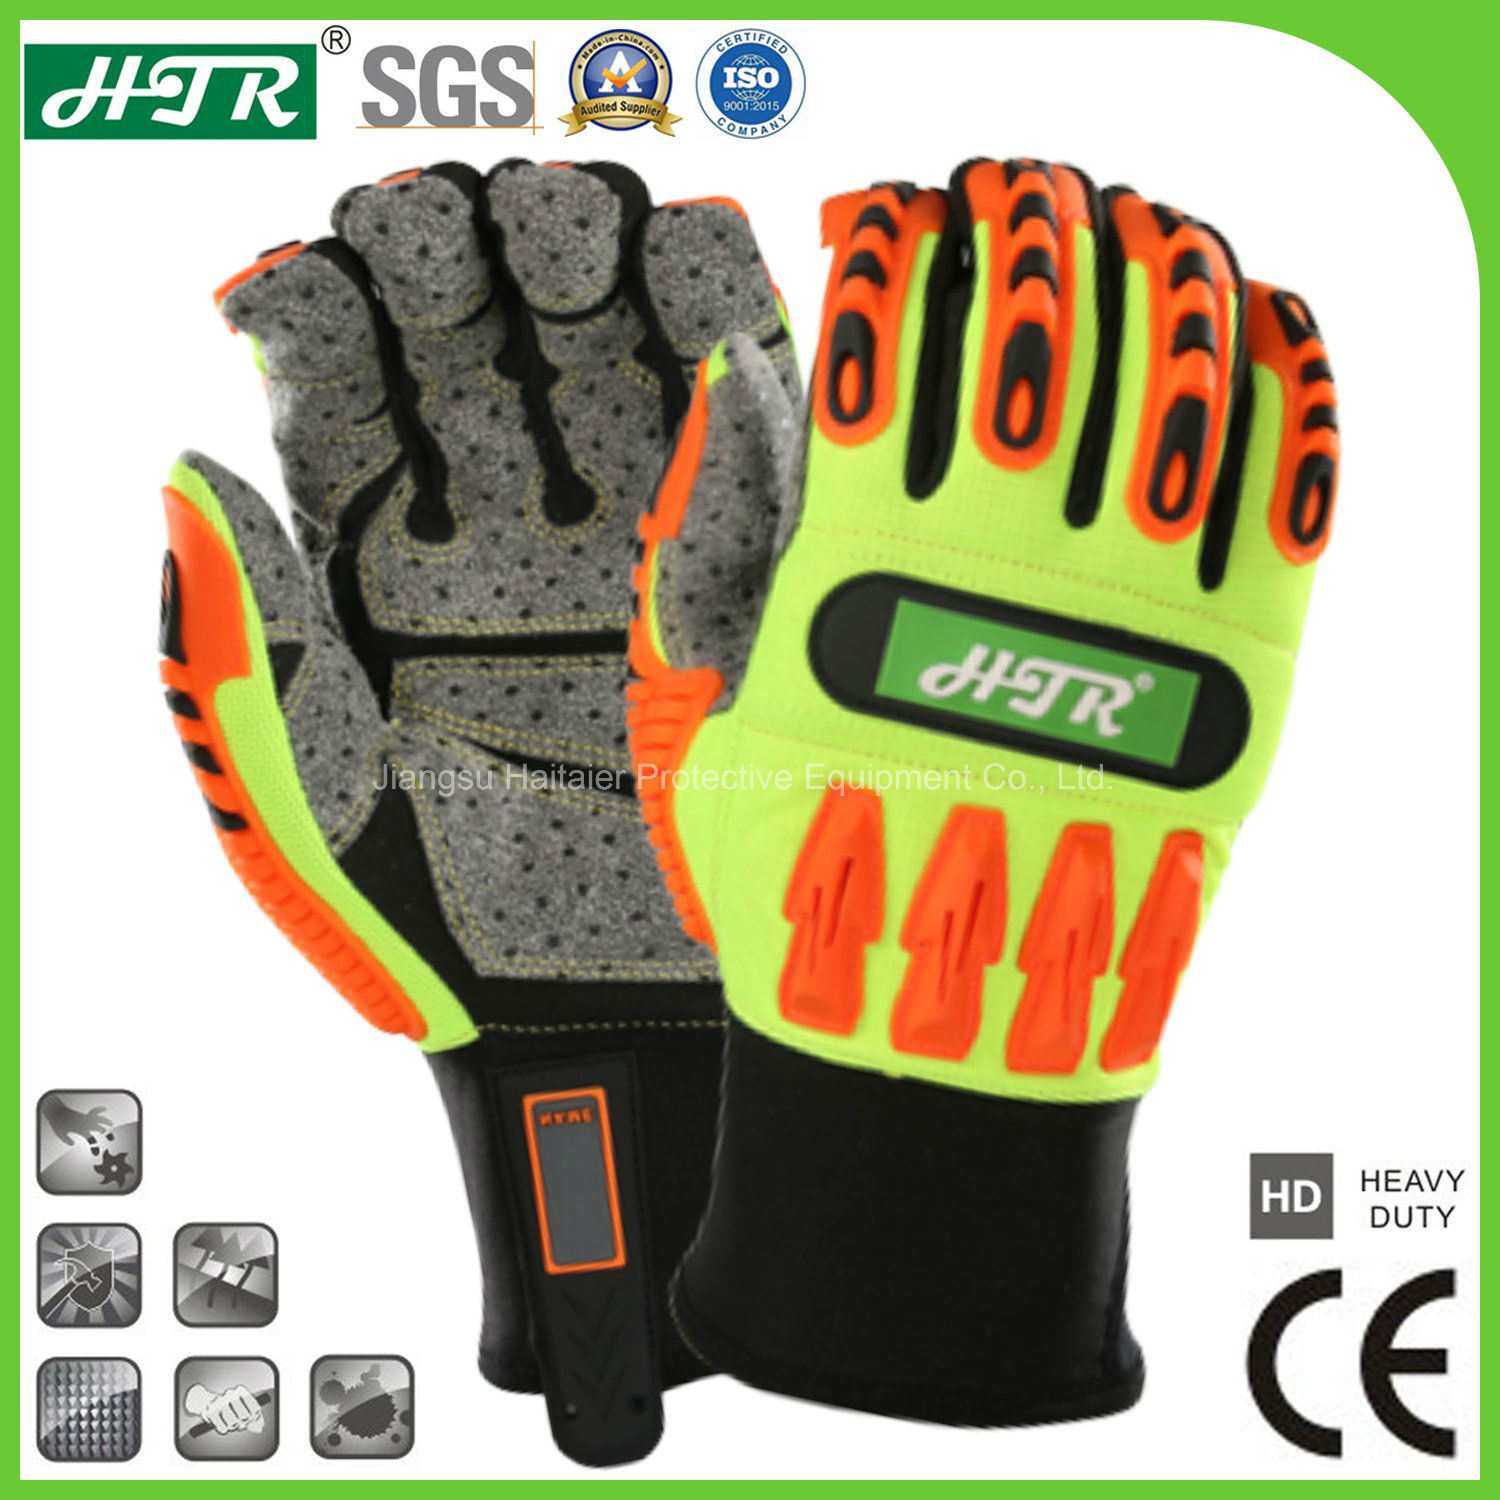 Safety Gloves Anti-vibration Impact Protection Latex Labor Protection Work Gloves Wear Resistance Gloves High Quality Latest Technology Workplace Safety Supplies